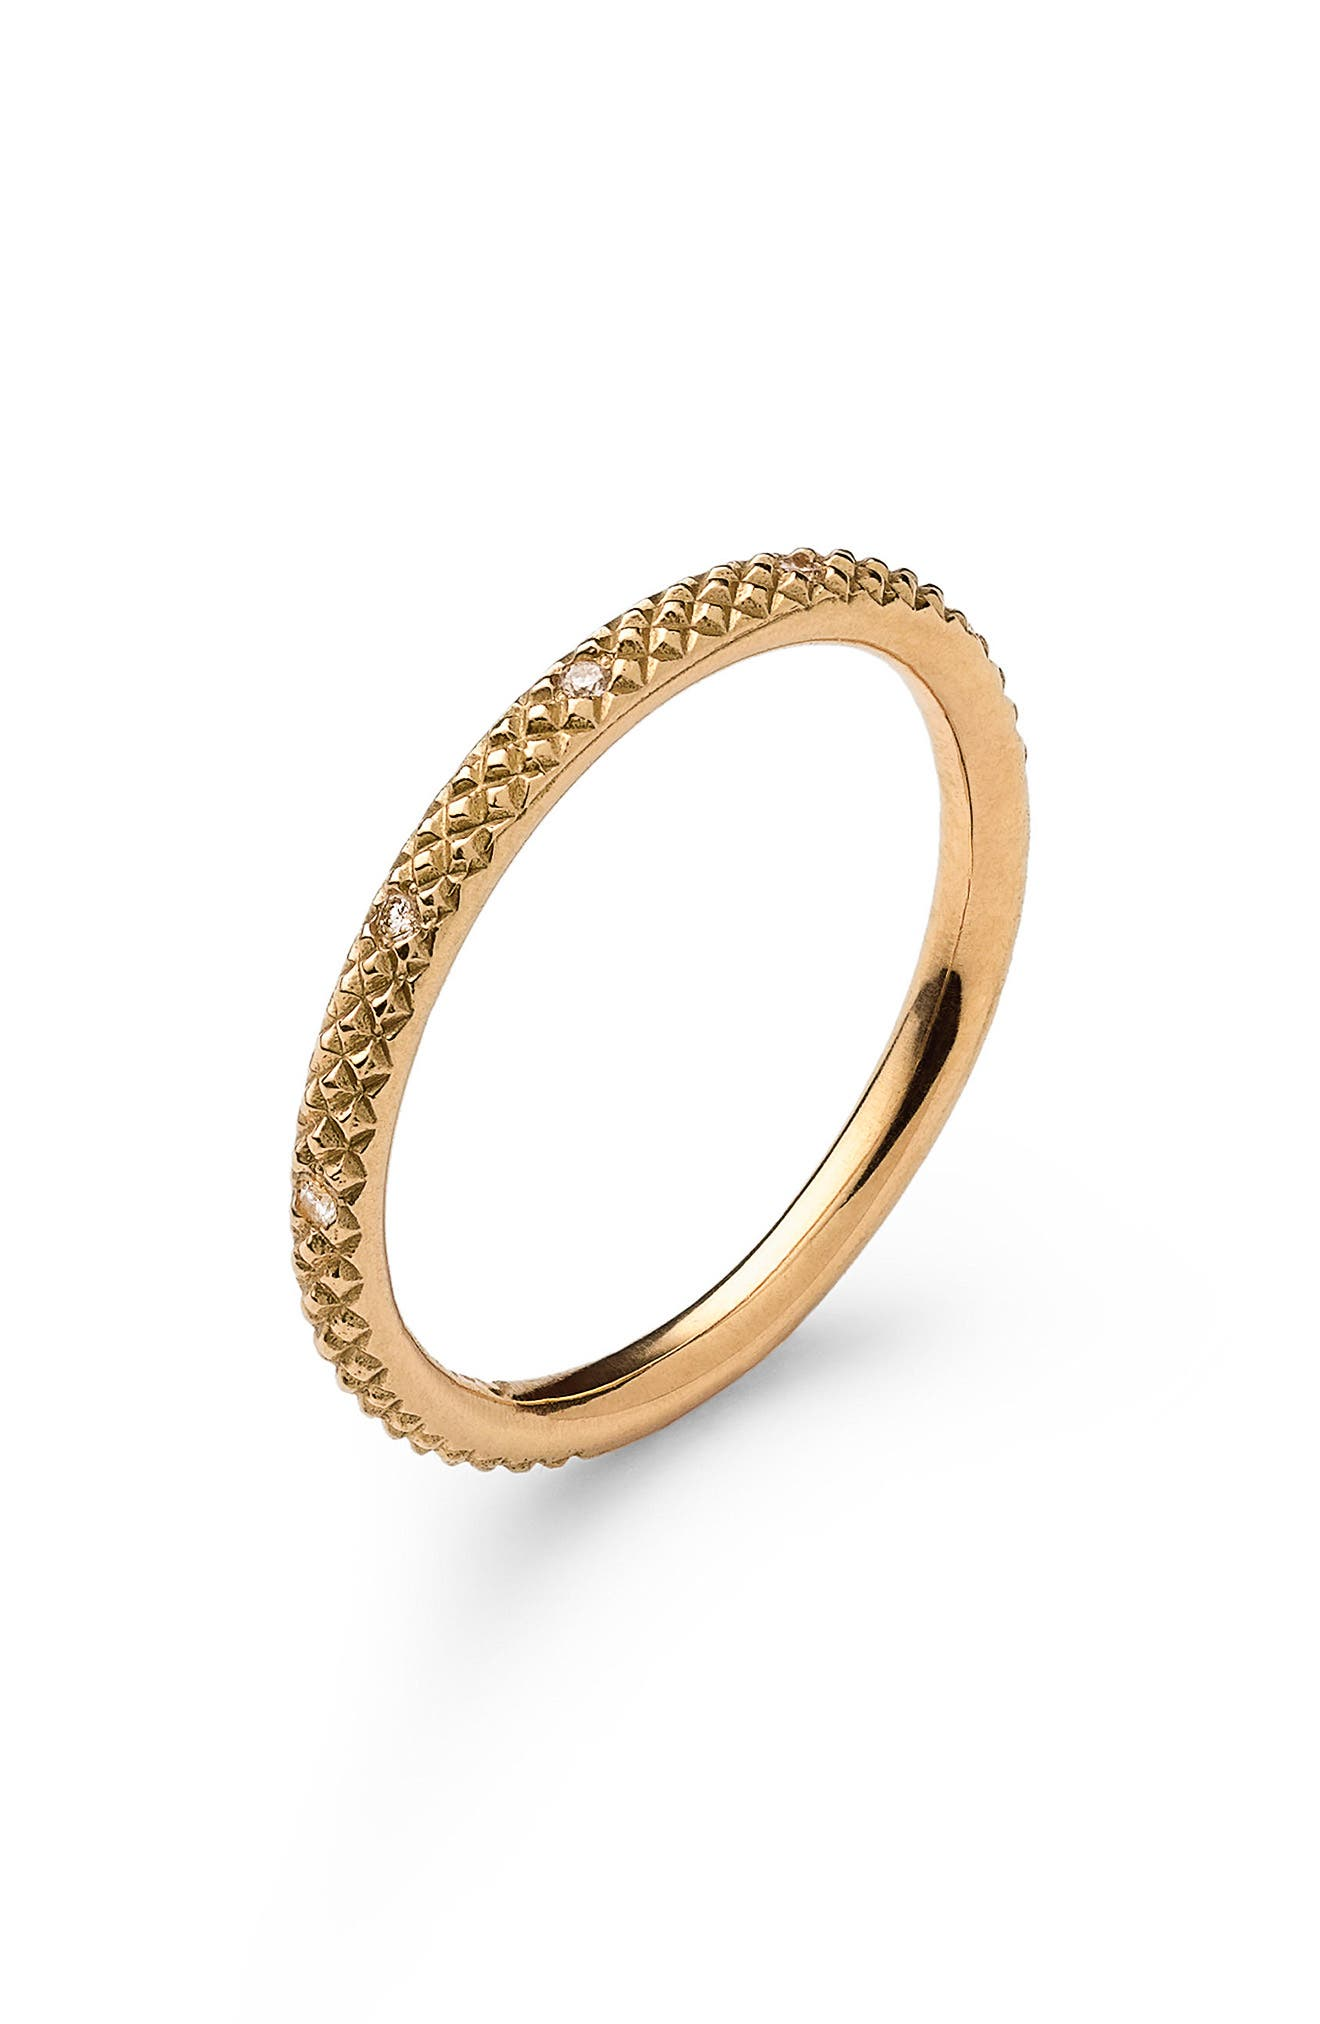 NORA KOGAN Miss Evie Diamond Ring in Yellow Gold